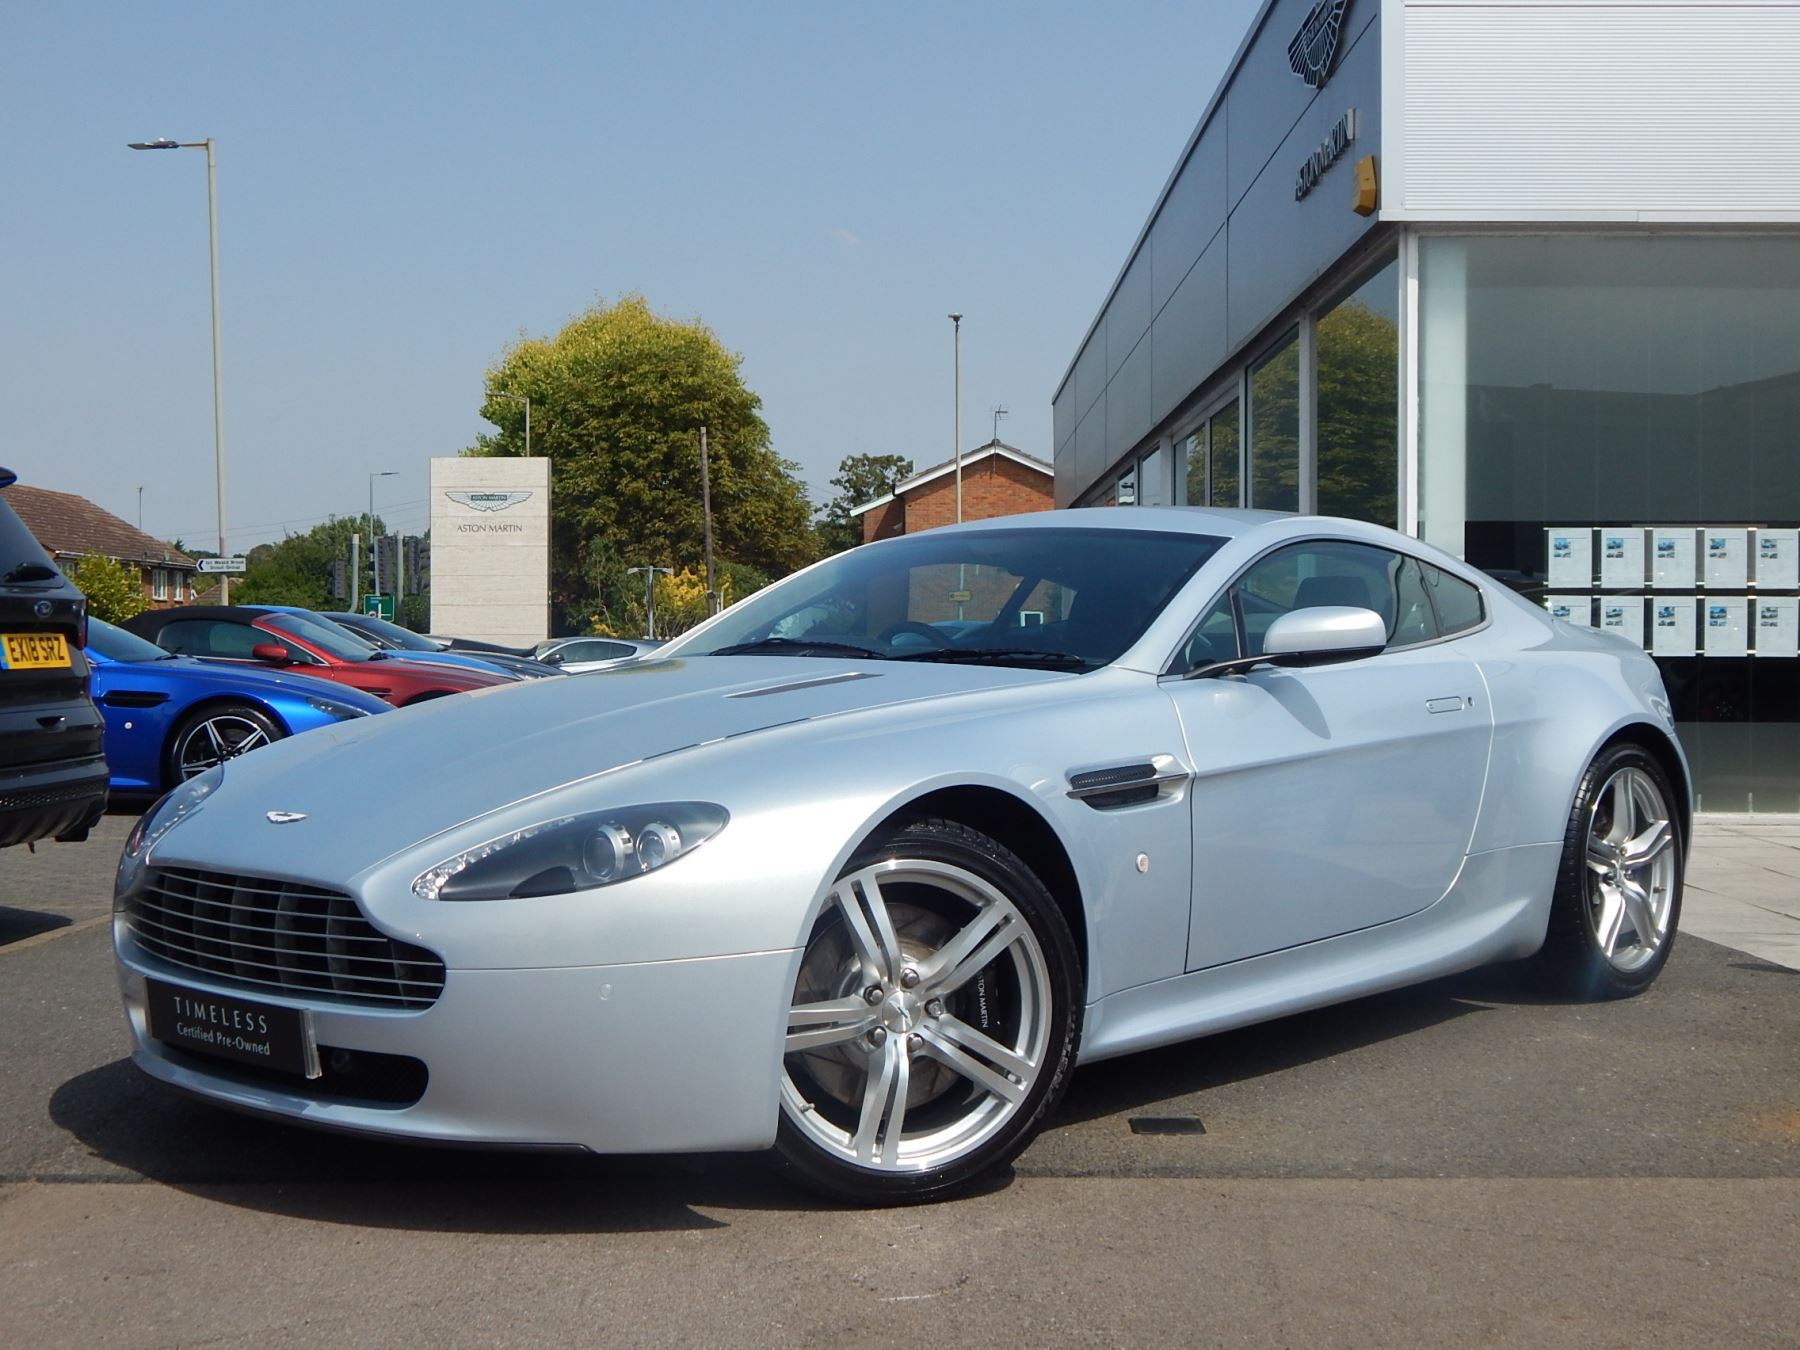 Aston Martin V8 Vantage Coupe 2dr [420] 4.7 3 door Coupe (2009) image